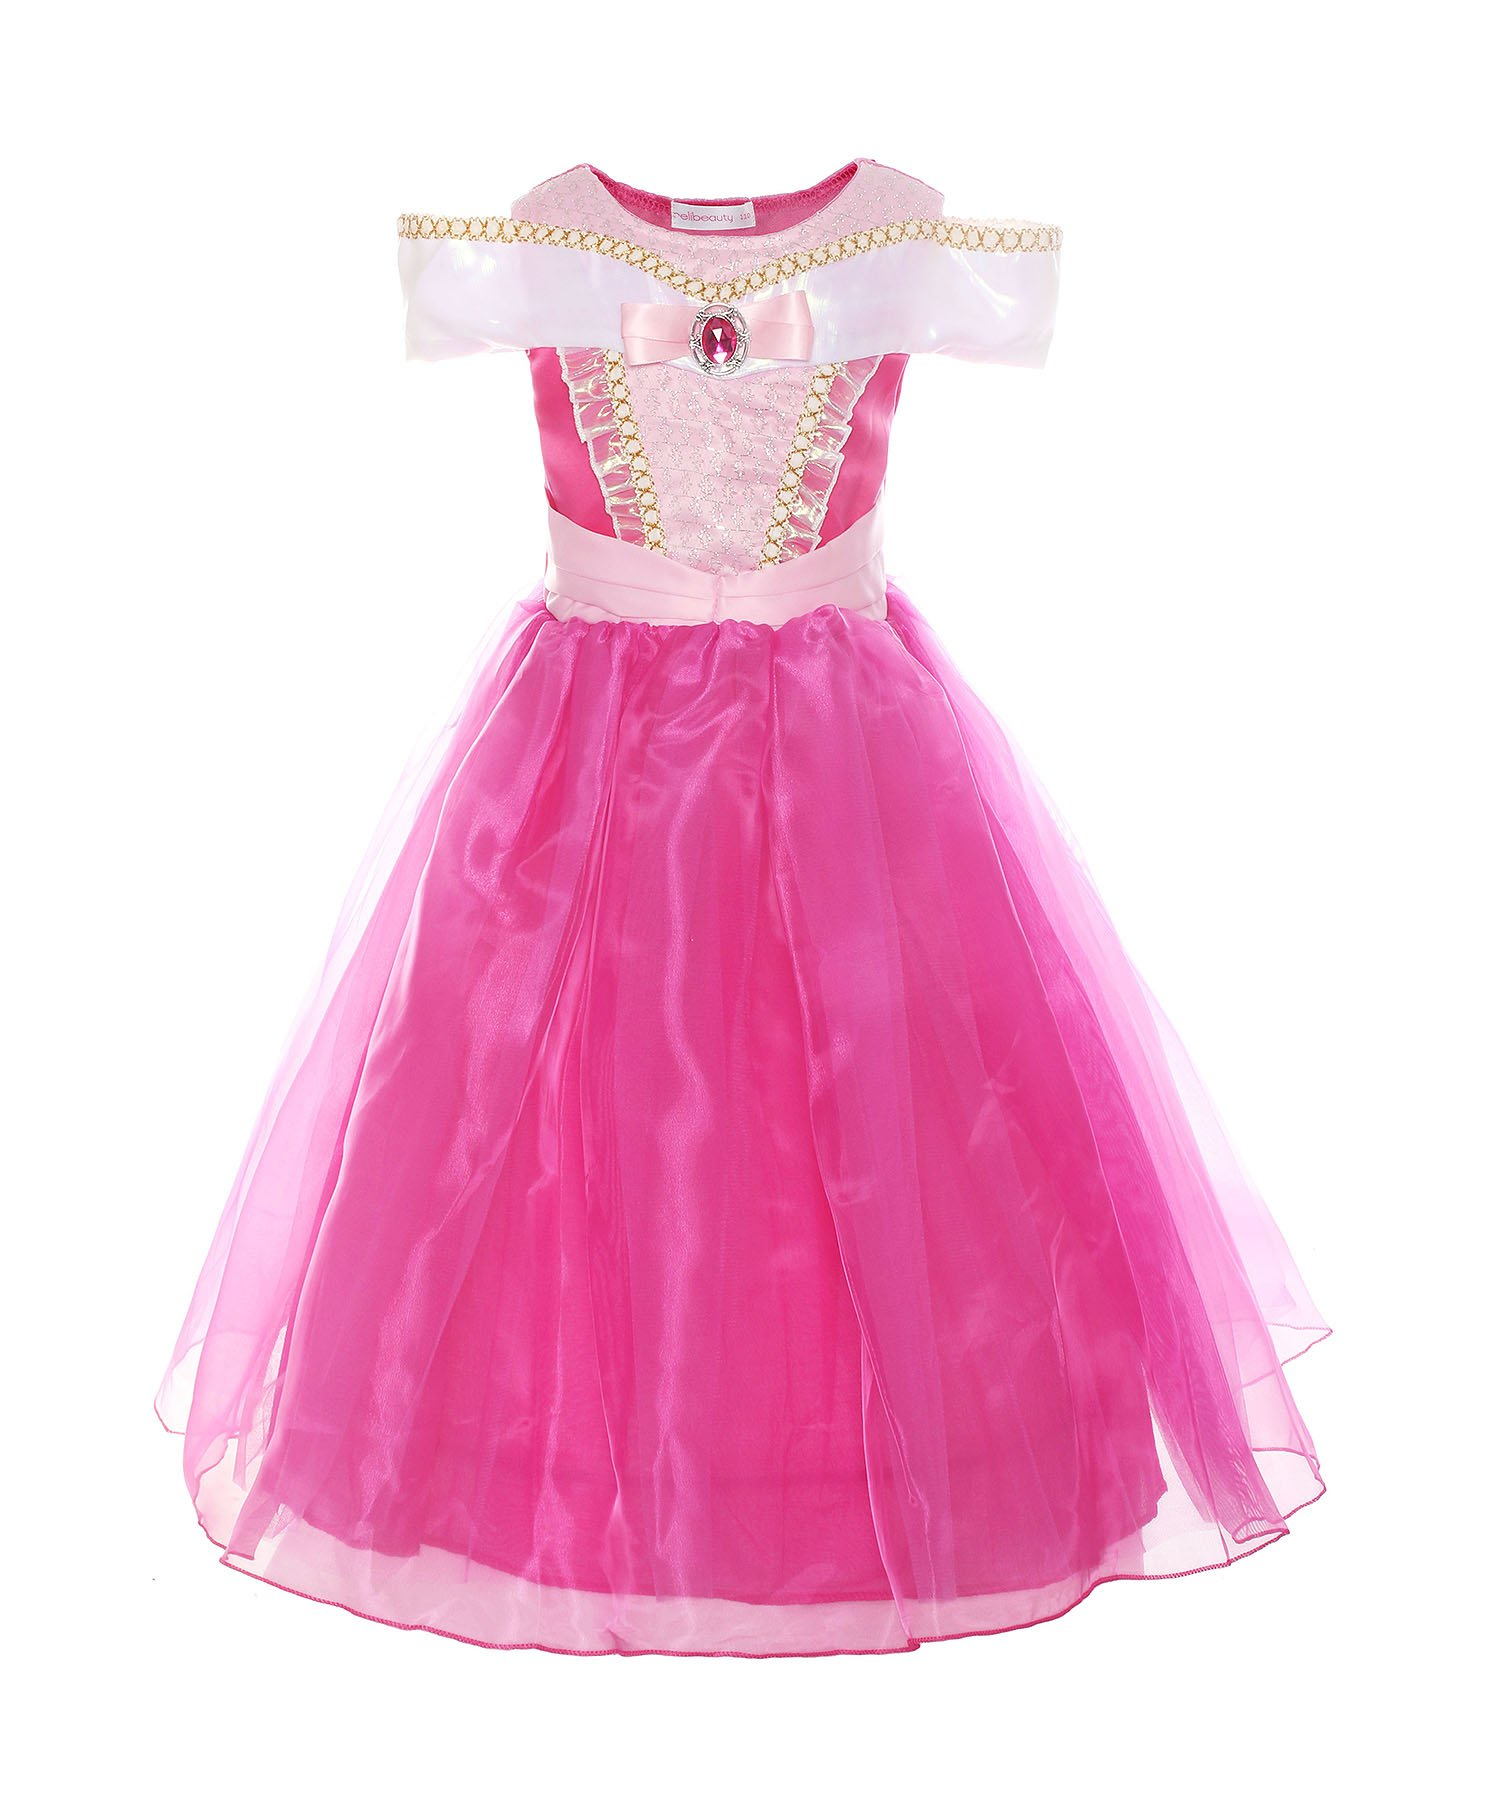 ReliBeauty Girls Drop Shoulder Princess Aurora Costume Dress up, Hot Pink, 7-8